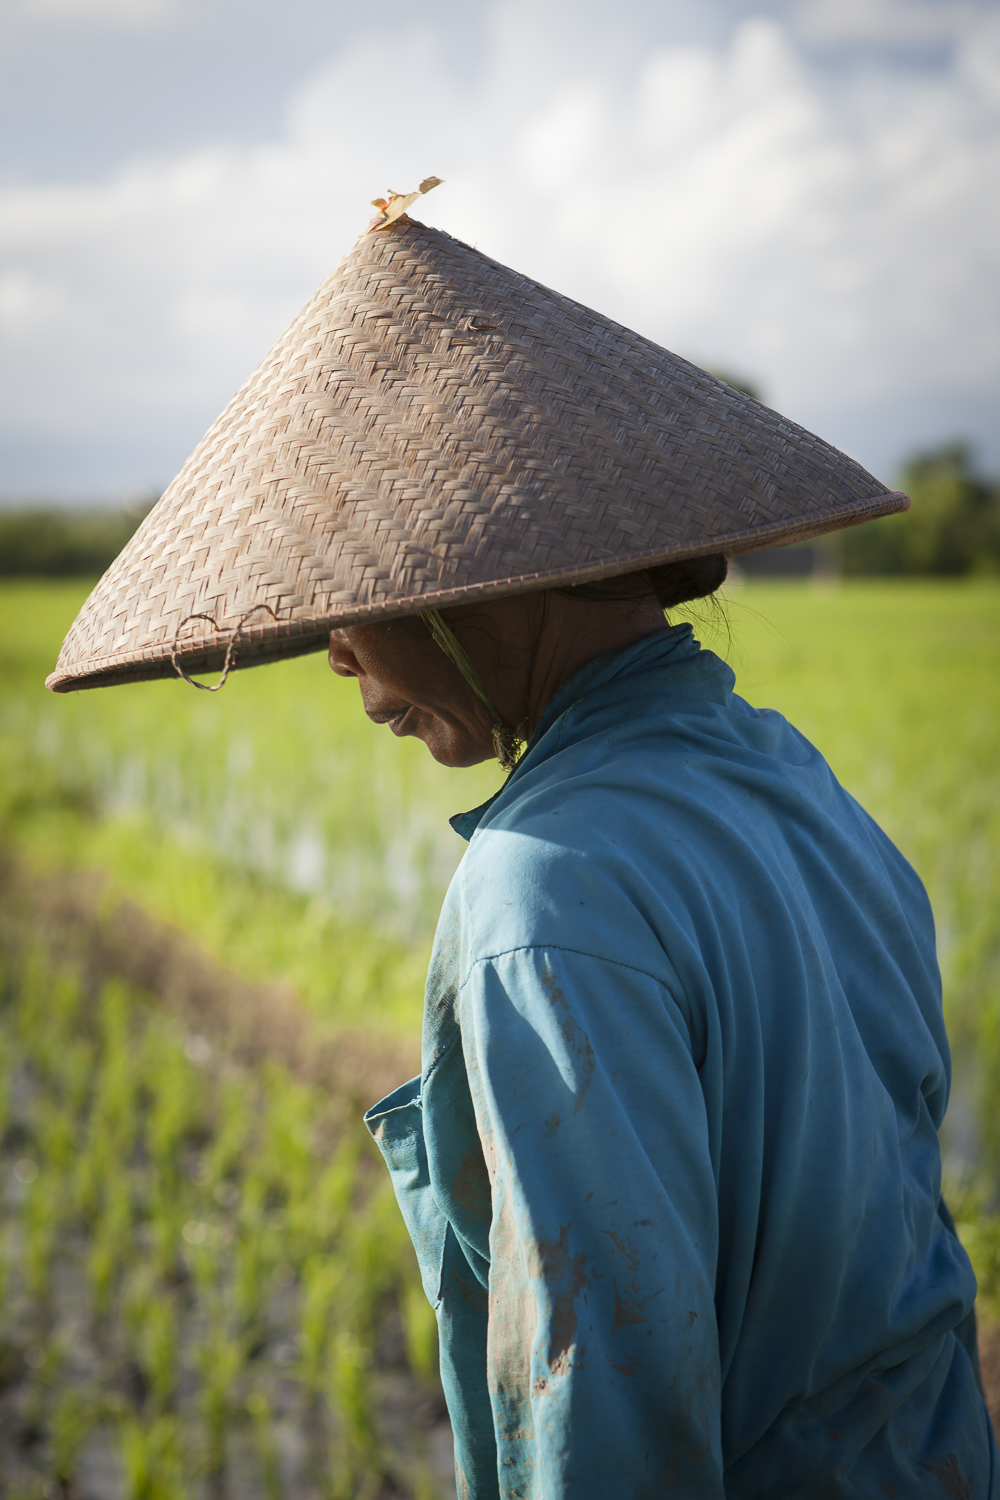 A woman tends to the rice fields of Tabanan near the temple of Tanah Lot, Bali, Indonesia